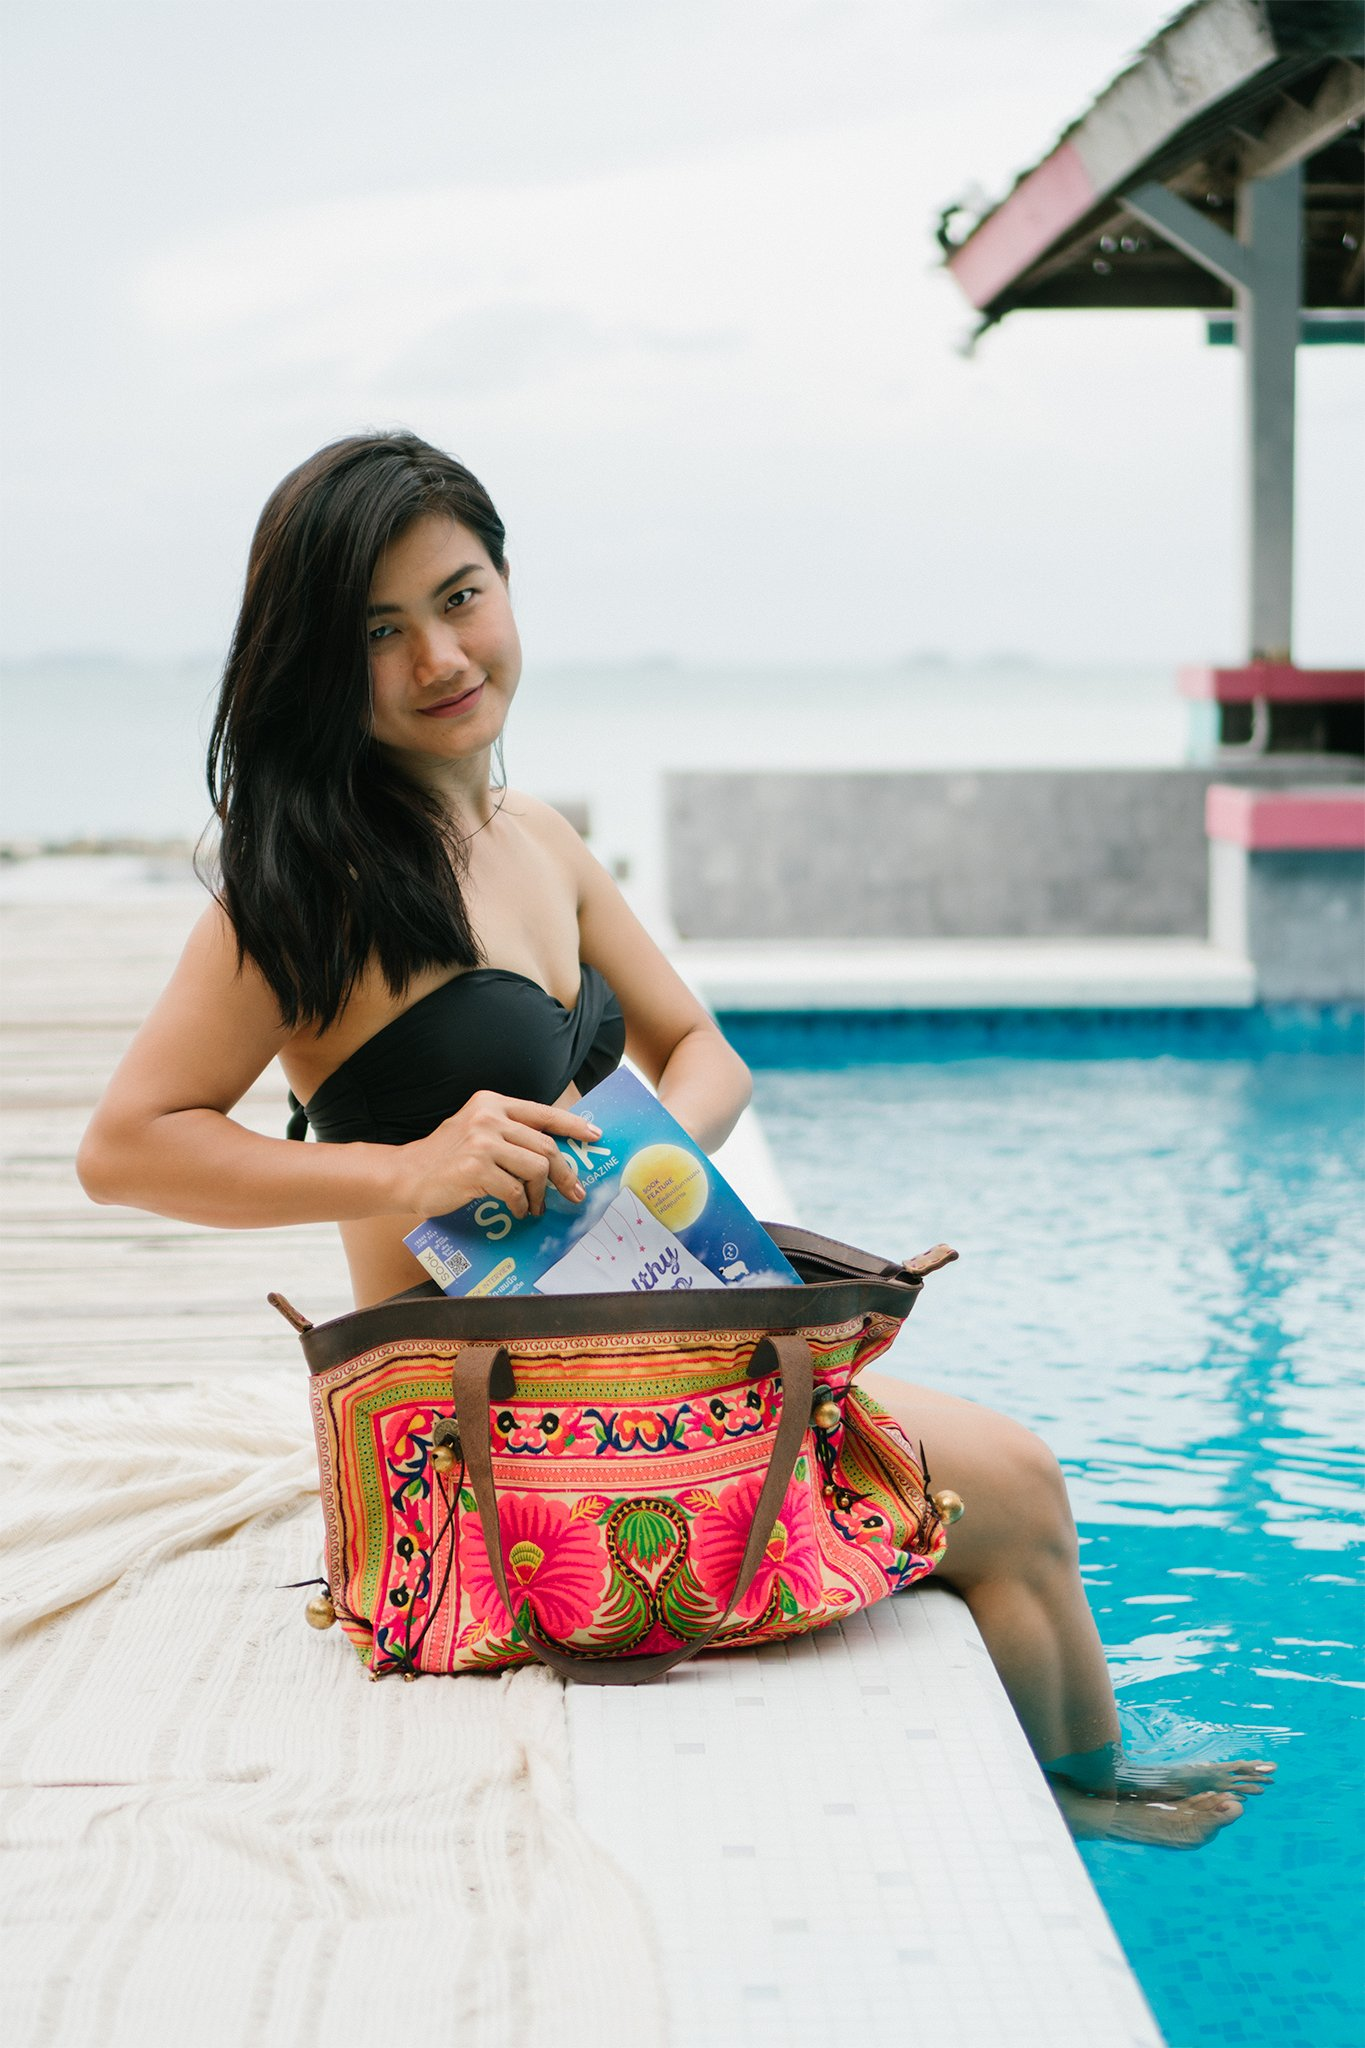 Changnoi Unique Fair Trade Women's Shoulder Bag with Hmong Embroidered, Genuine Leather Straps - handmade-bags